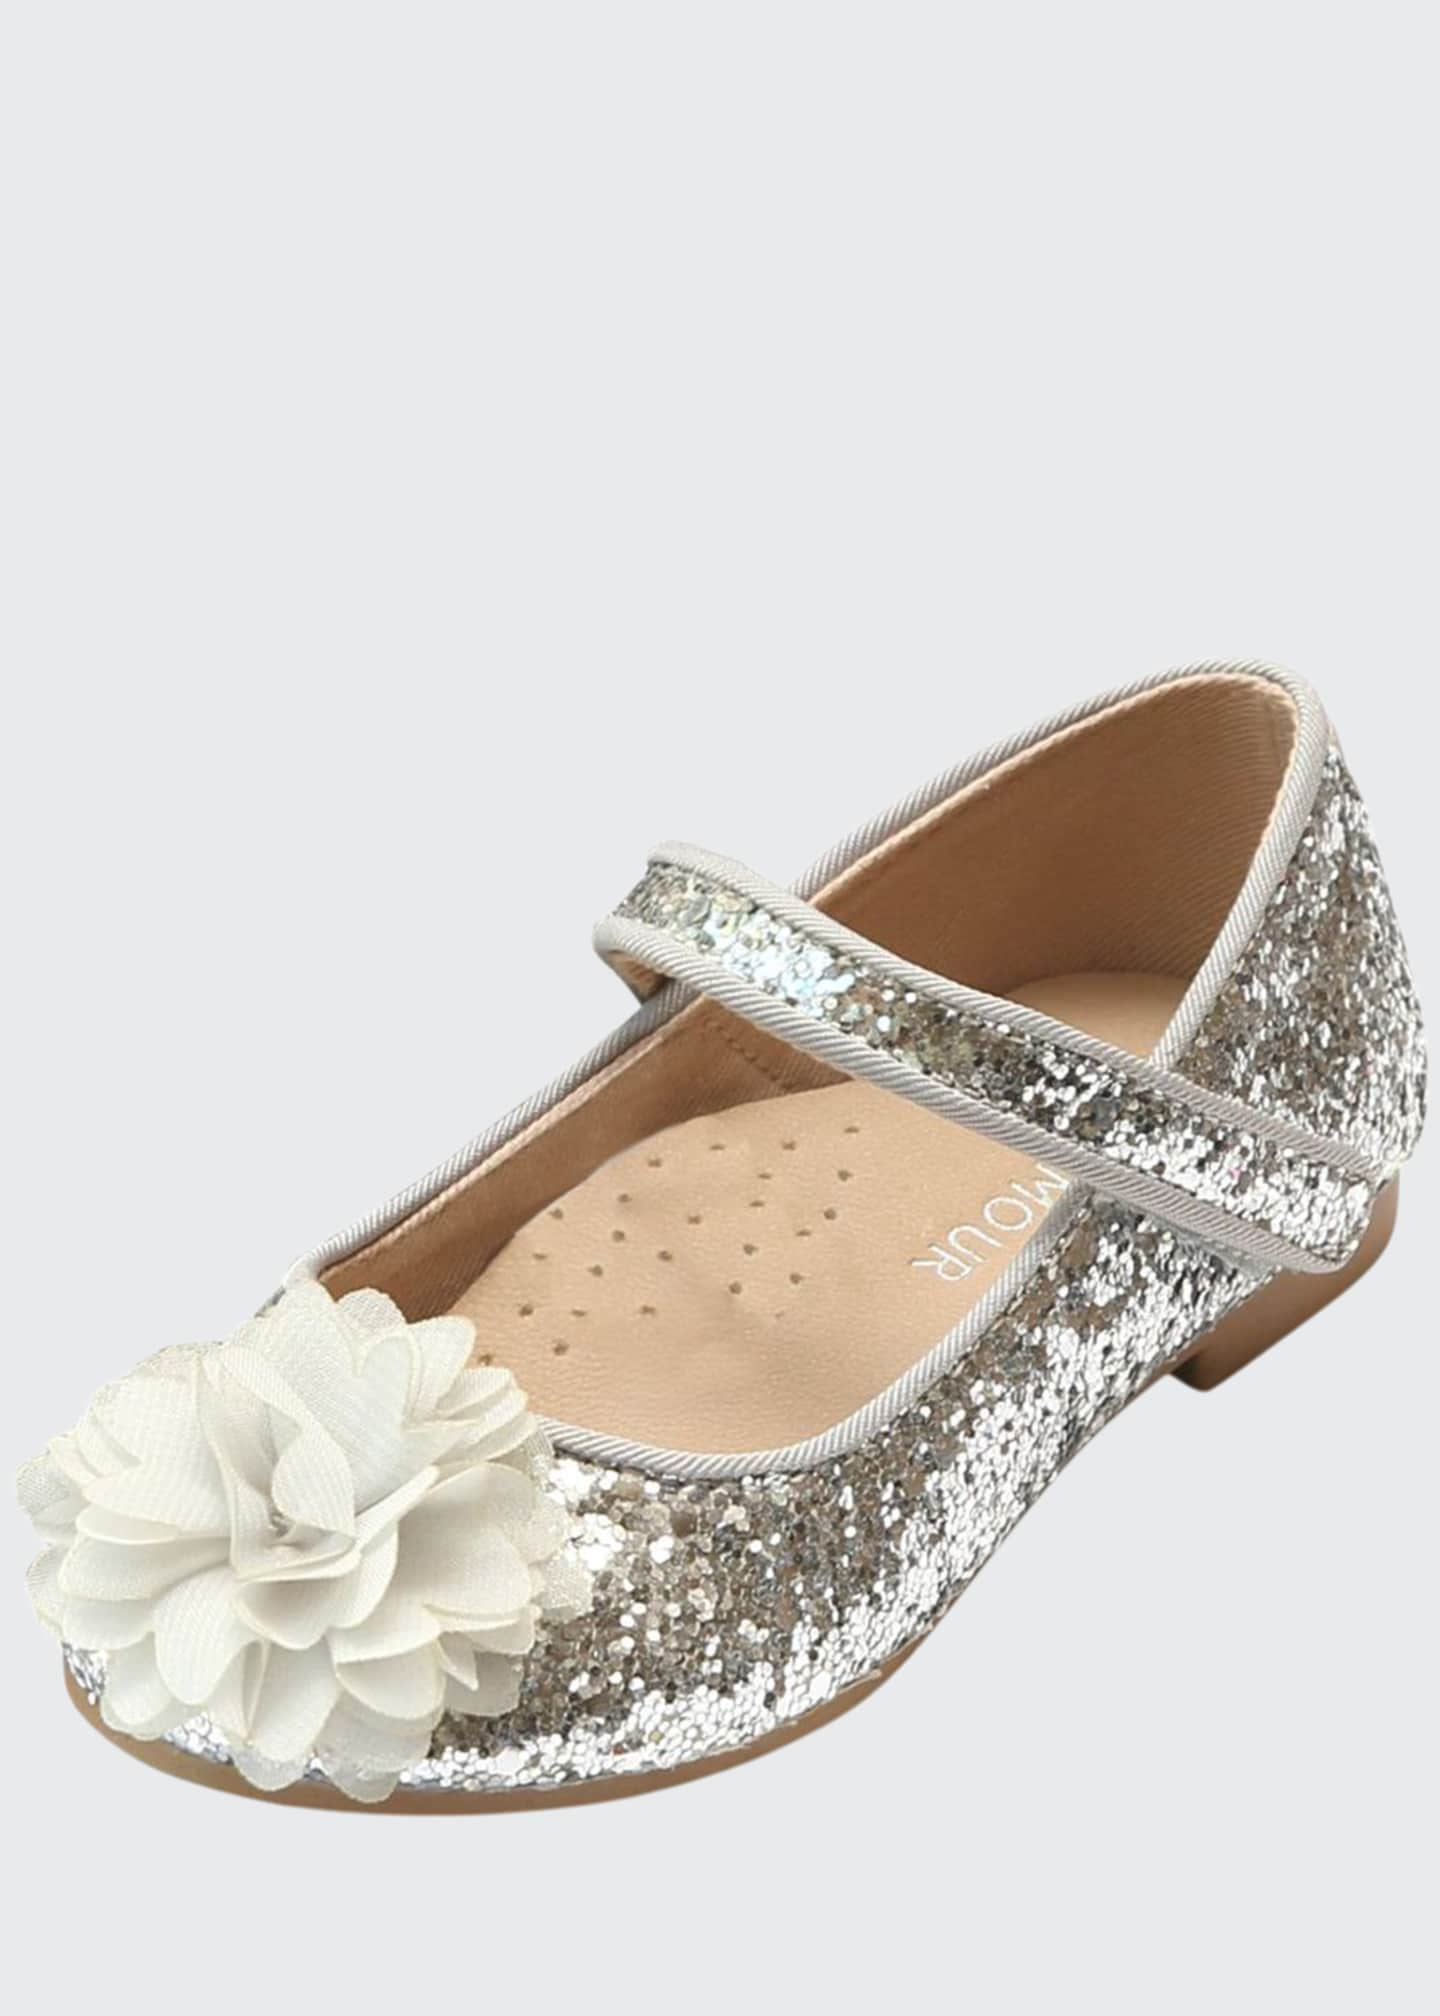 L'Amour Shoes Alice Sparkly Glitter Flower Flats,